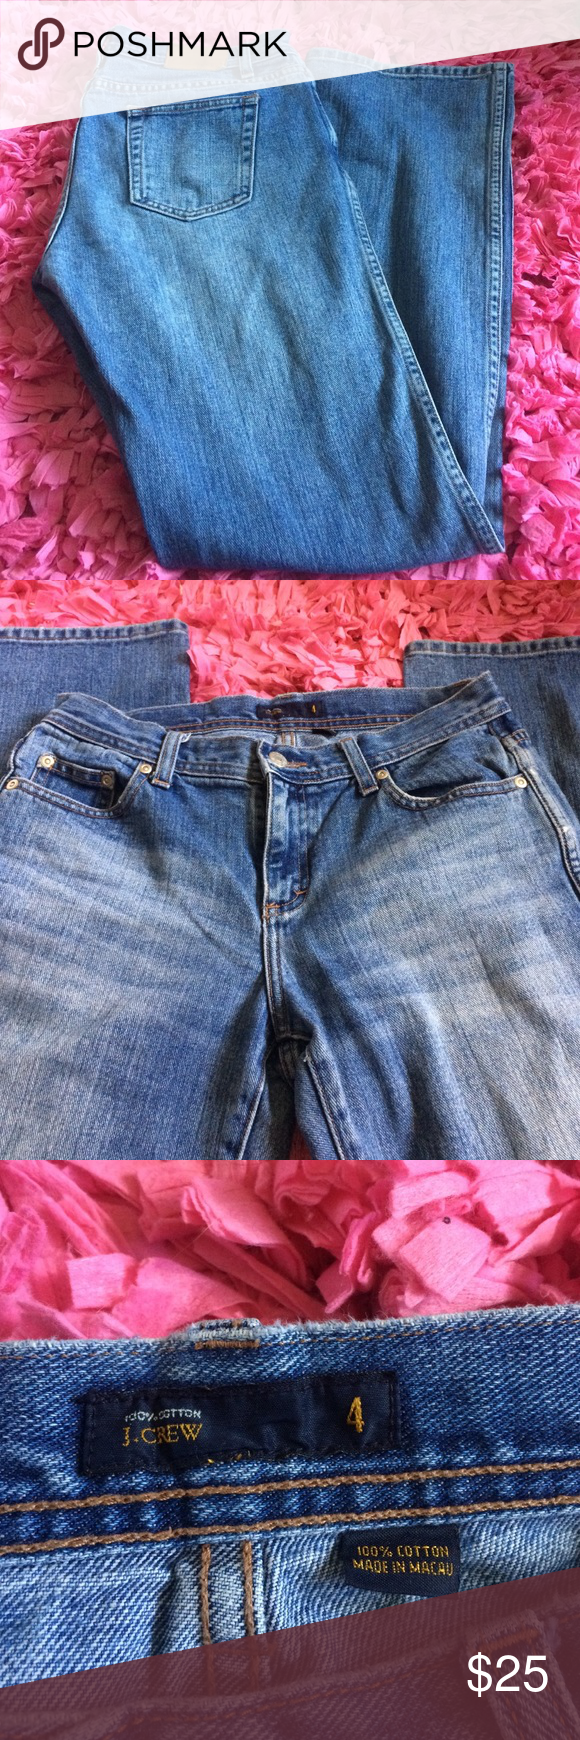 Jcrew Jeans Excellent condition. Size 4.  Measurements laying flat: Waist: 15 Inseam: 31  ❤️No trades or other websites ❤️Open to reasonable offers  ❤️Next day ship Mon-Sat ❤️4.9 rating ❤️200+ listings sold J. Crew Jeans